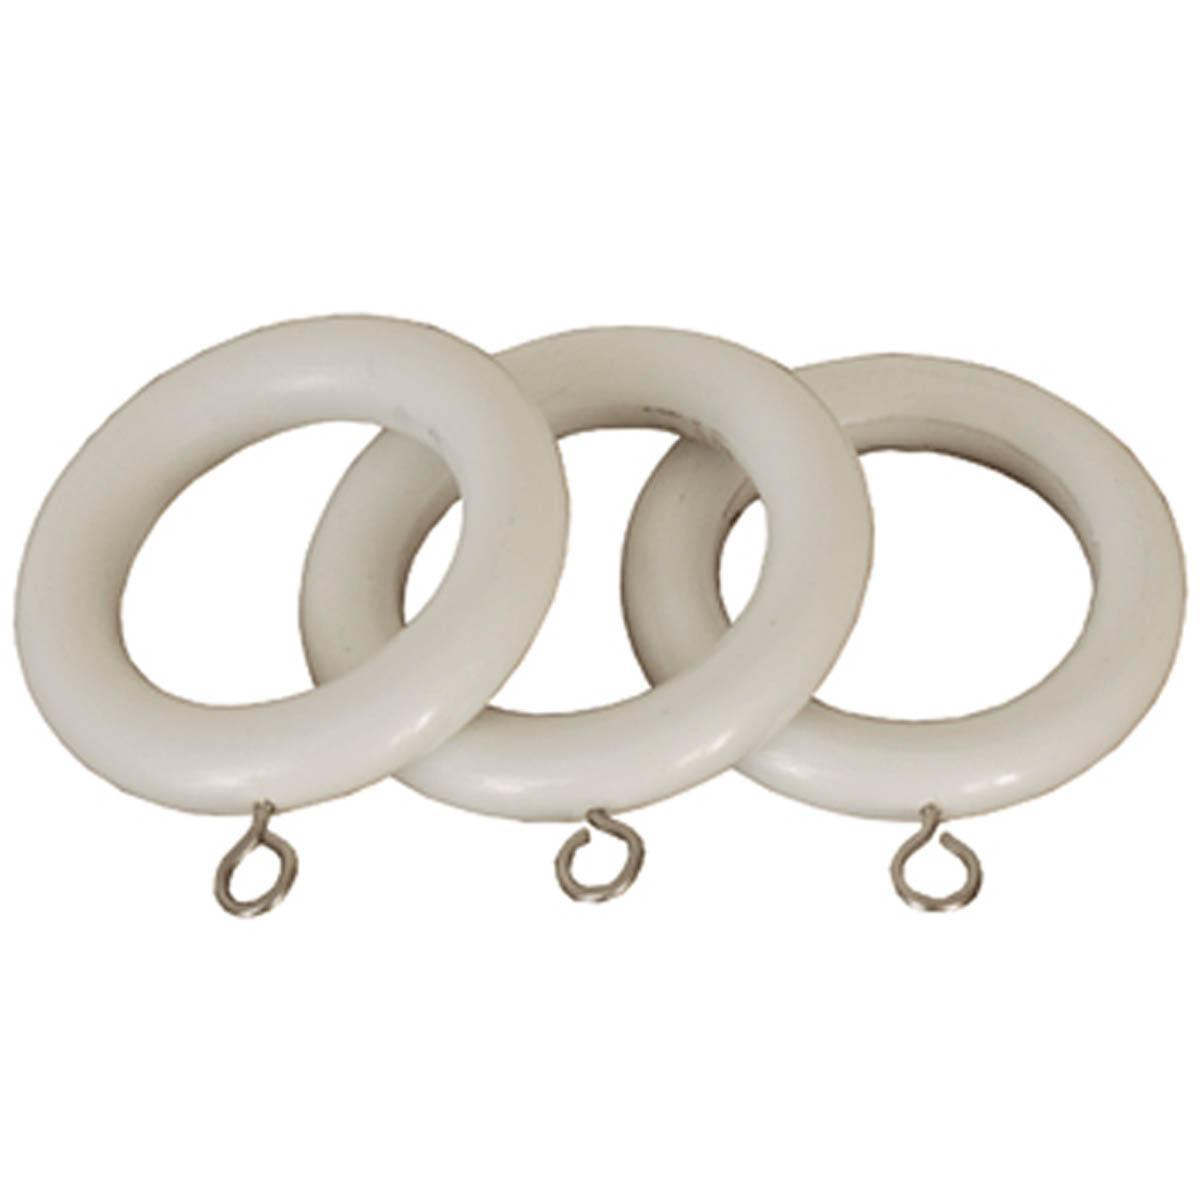 Speedy Curtain Poles County 28mm Wooden Curtain Rings White Picture